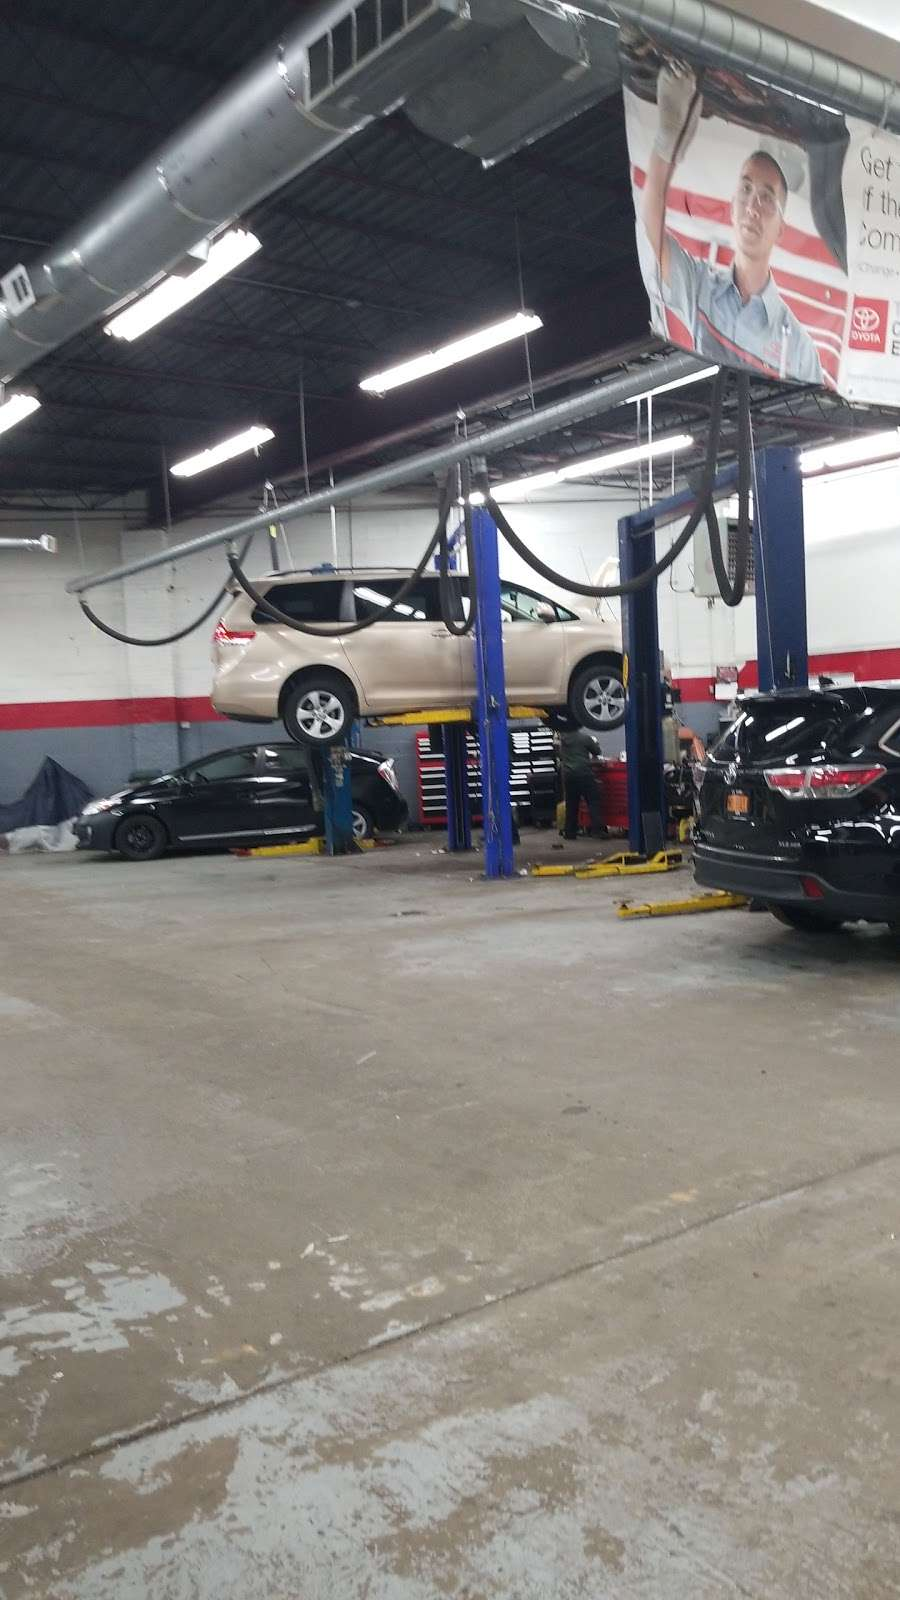 City World Toyota - Service Center - car repair  | Photo 8 of 9 | Address: 3860 Boston Rd, The Bronx, NY 10469, USA | Phone: (718) 655-1800